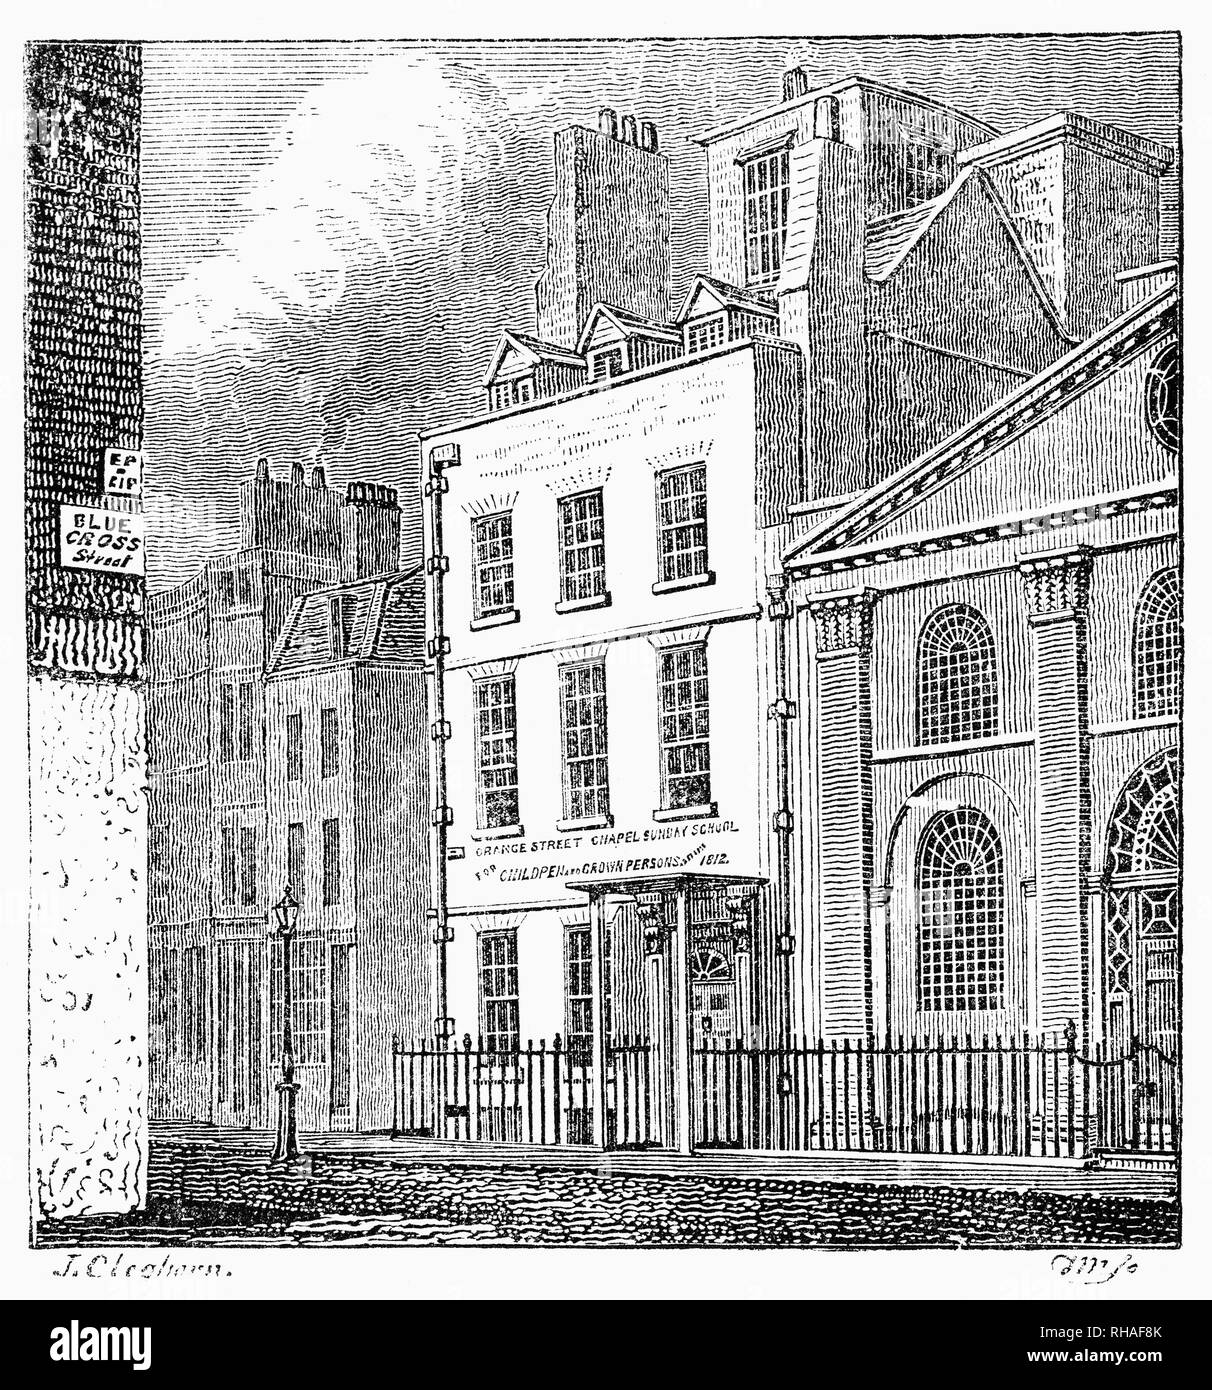 Sir Isaac Newton's house in Islington, London.  Newton FRS PRS (1642-1726/27) was an English mathematician, physicist, astronomer, theologian widely recognised as one of the most influential scientists of all time, and a key figure in the scientific revolution. In his book 'Mathematical Principles of Natural Philosophy', first published in 1687, Newton formulated the laws of motion and universal gravitation, the laws of planetary motion, account for tides, the trajectories of comets, the precession of the equinoxes and other phenomena. - Stock Image